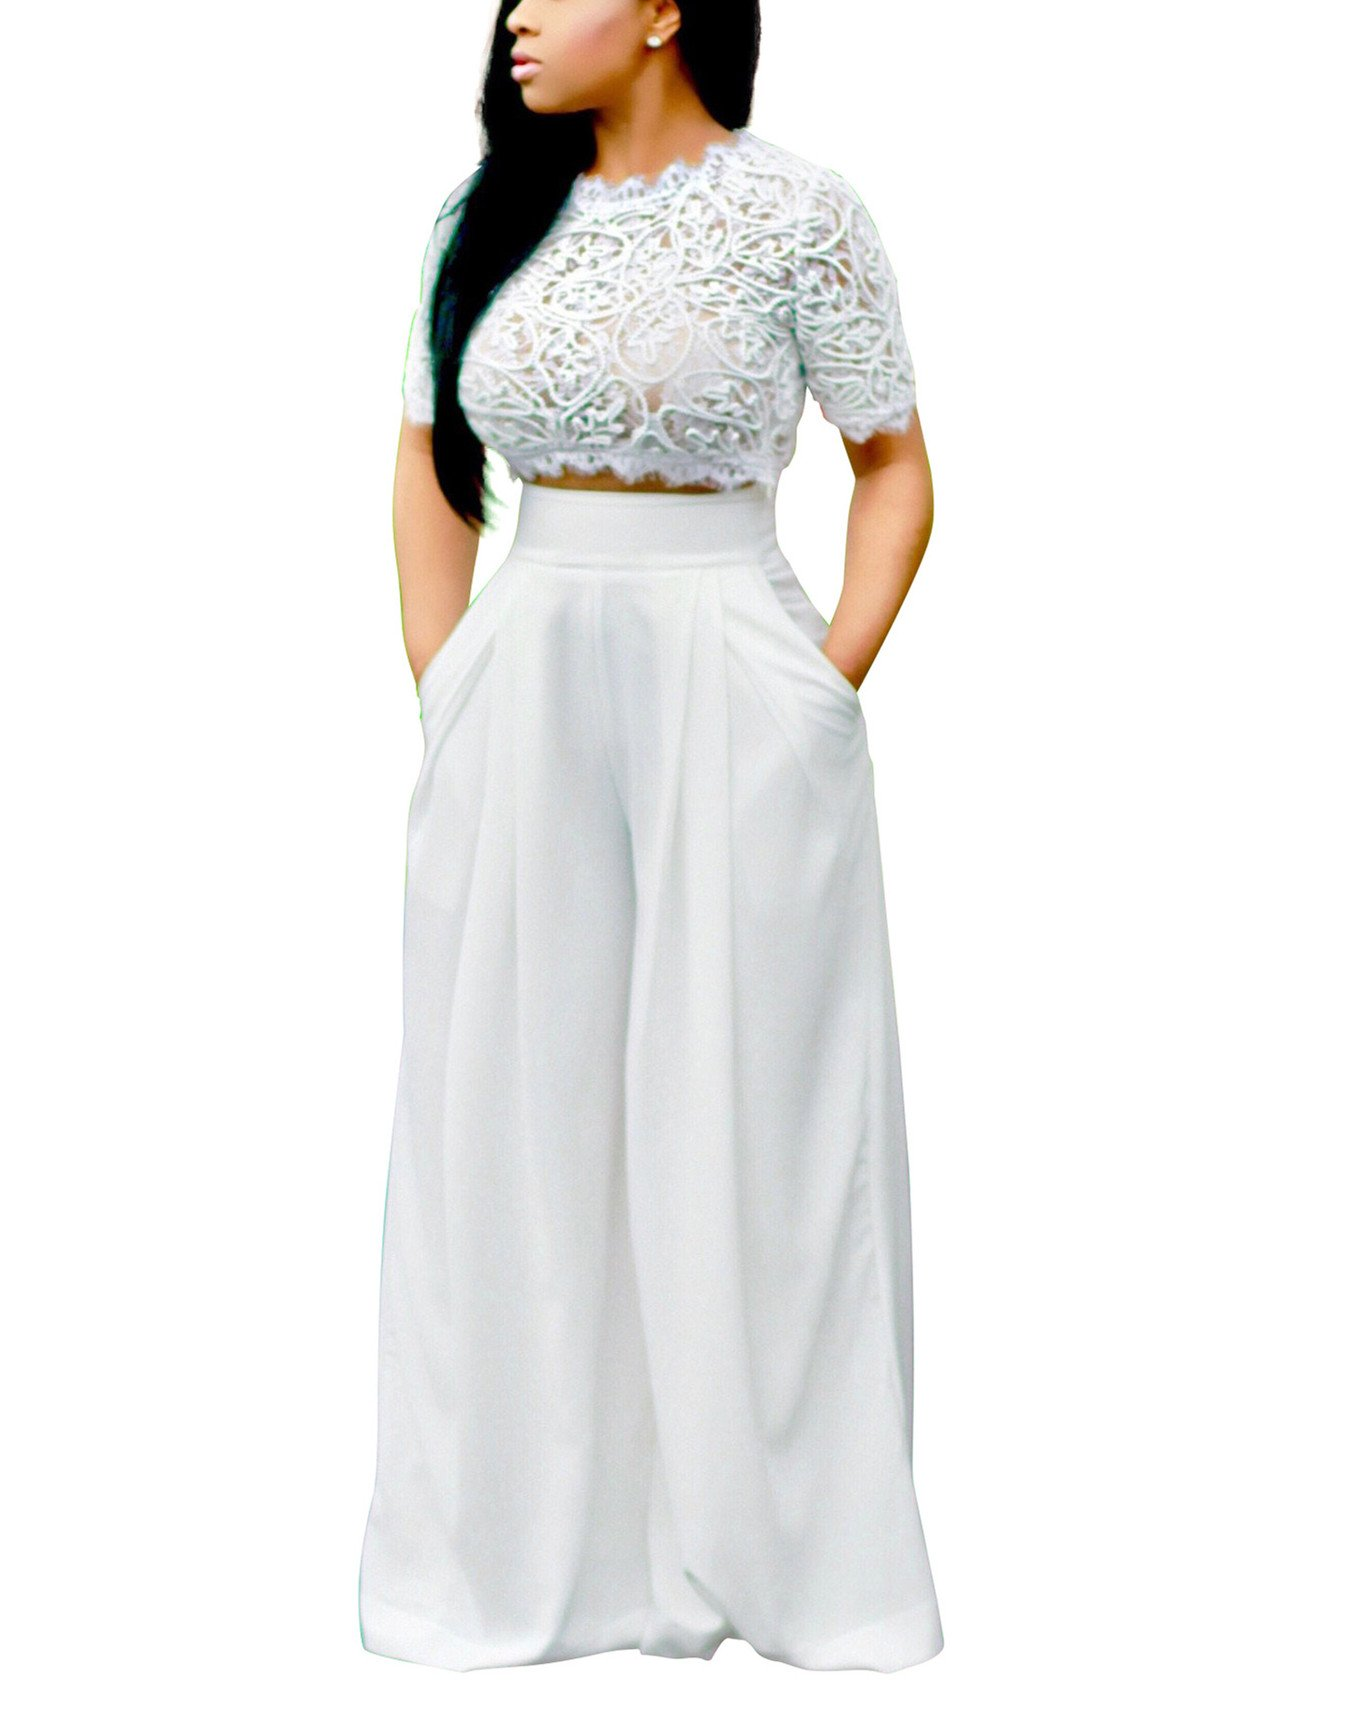 YSJERA Women's Sexy Semi Sheer Short Sleeve Lace Crop Top w/High Waist Palazzo Pants 2 Pieces Jumpsuits (M,White)